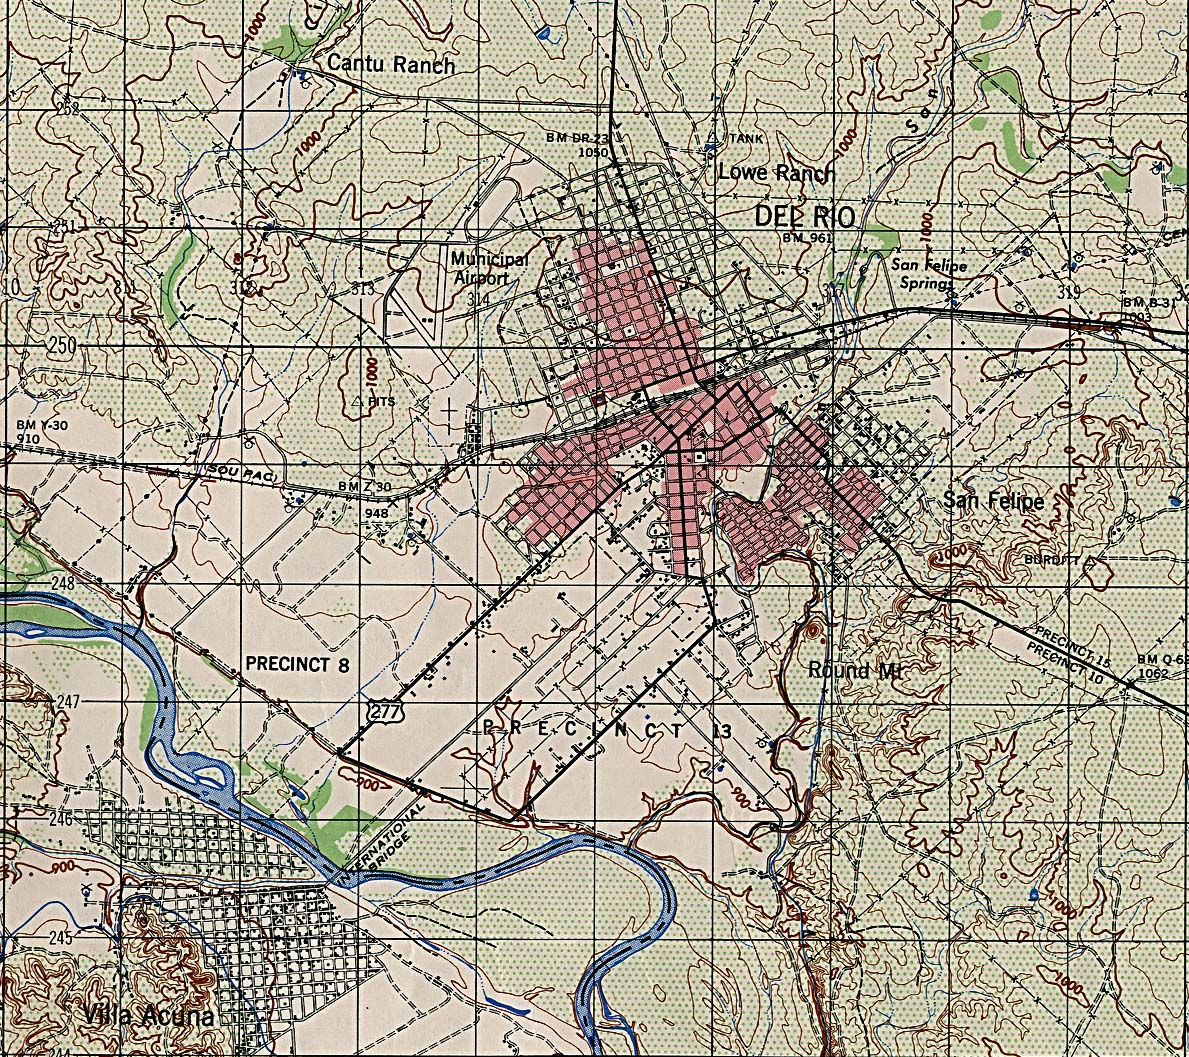 1up Travel Maps Of Texas Cities Del Rio Topographic Map 1 50 000